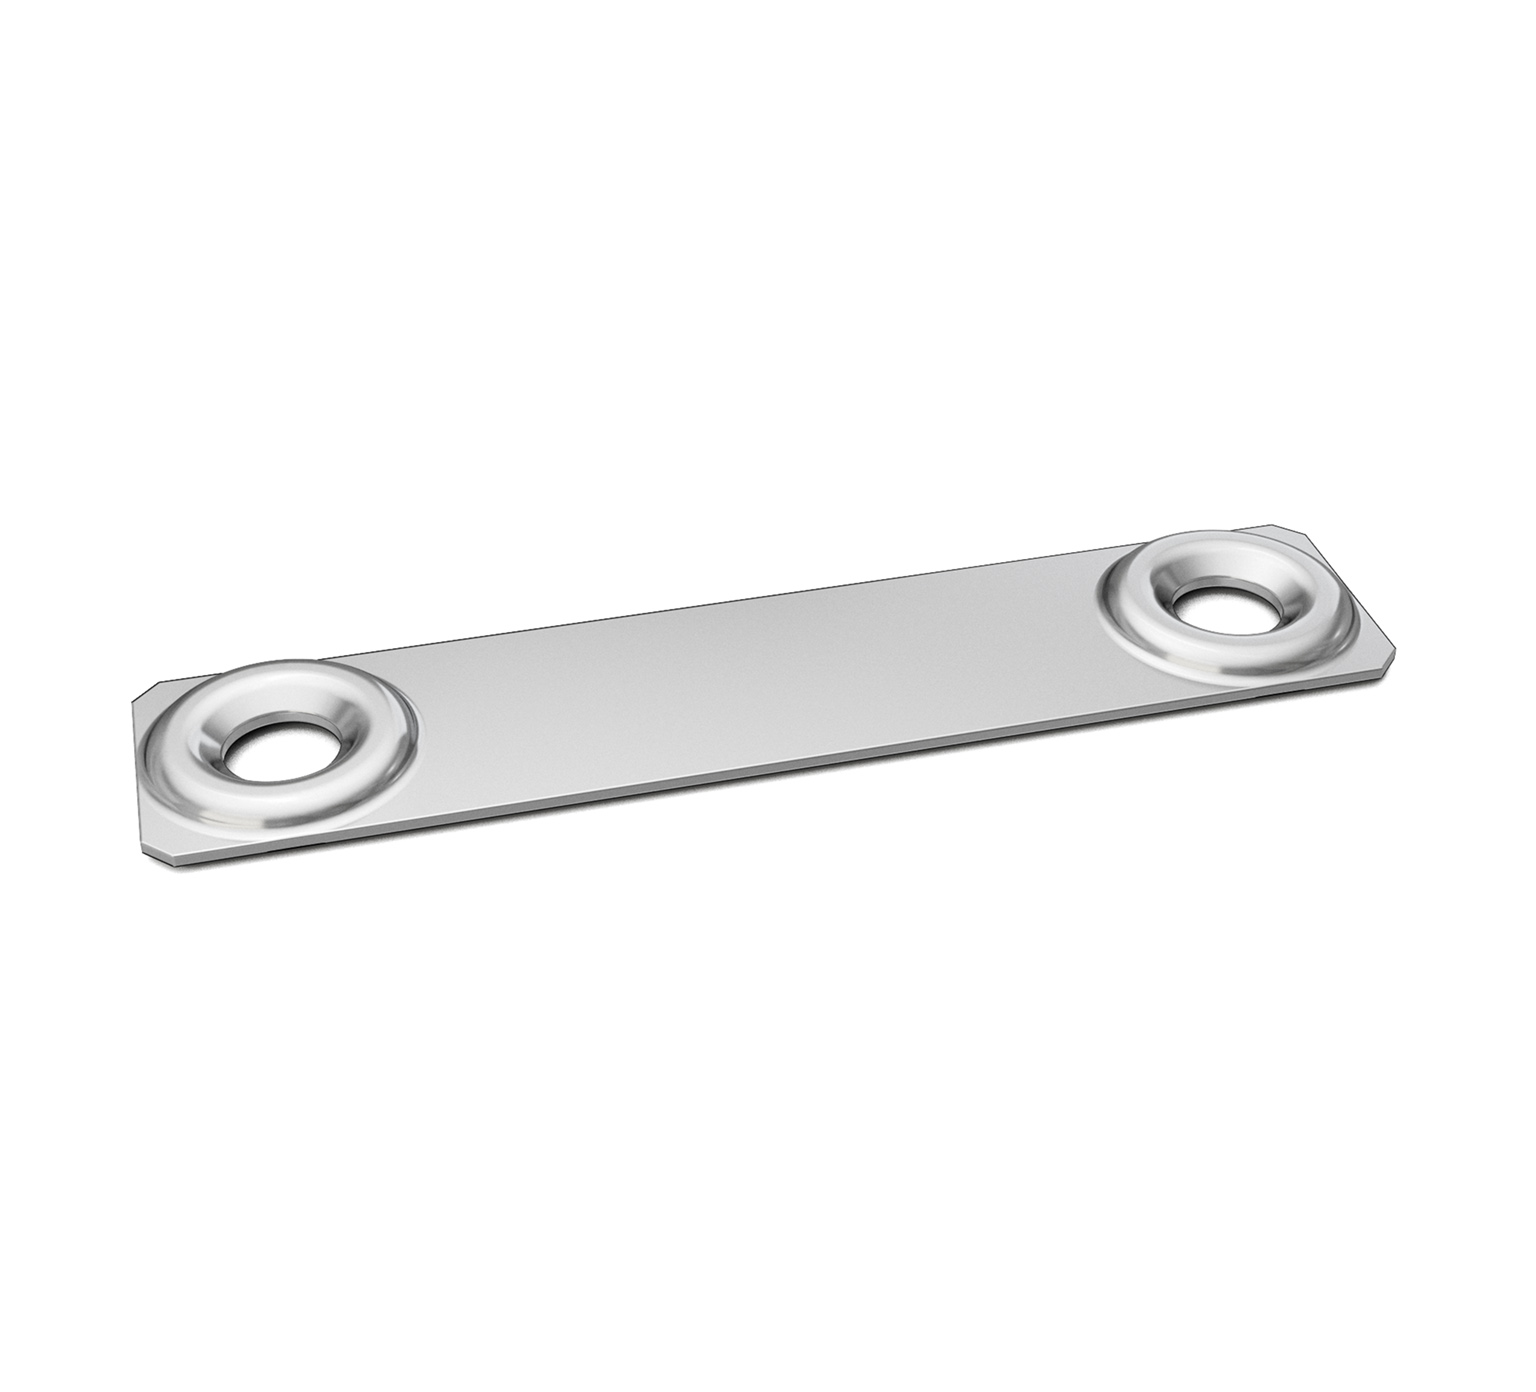 222182 Stainless Steel Link - 5.675 x 1.25 x 0.155 in alt 1